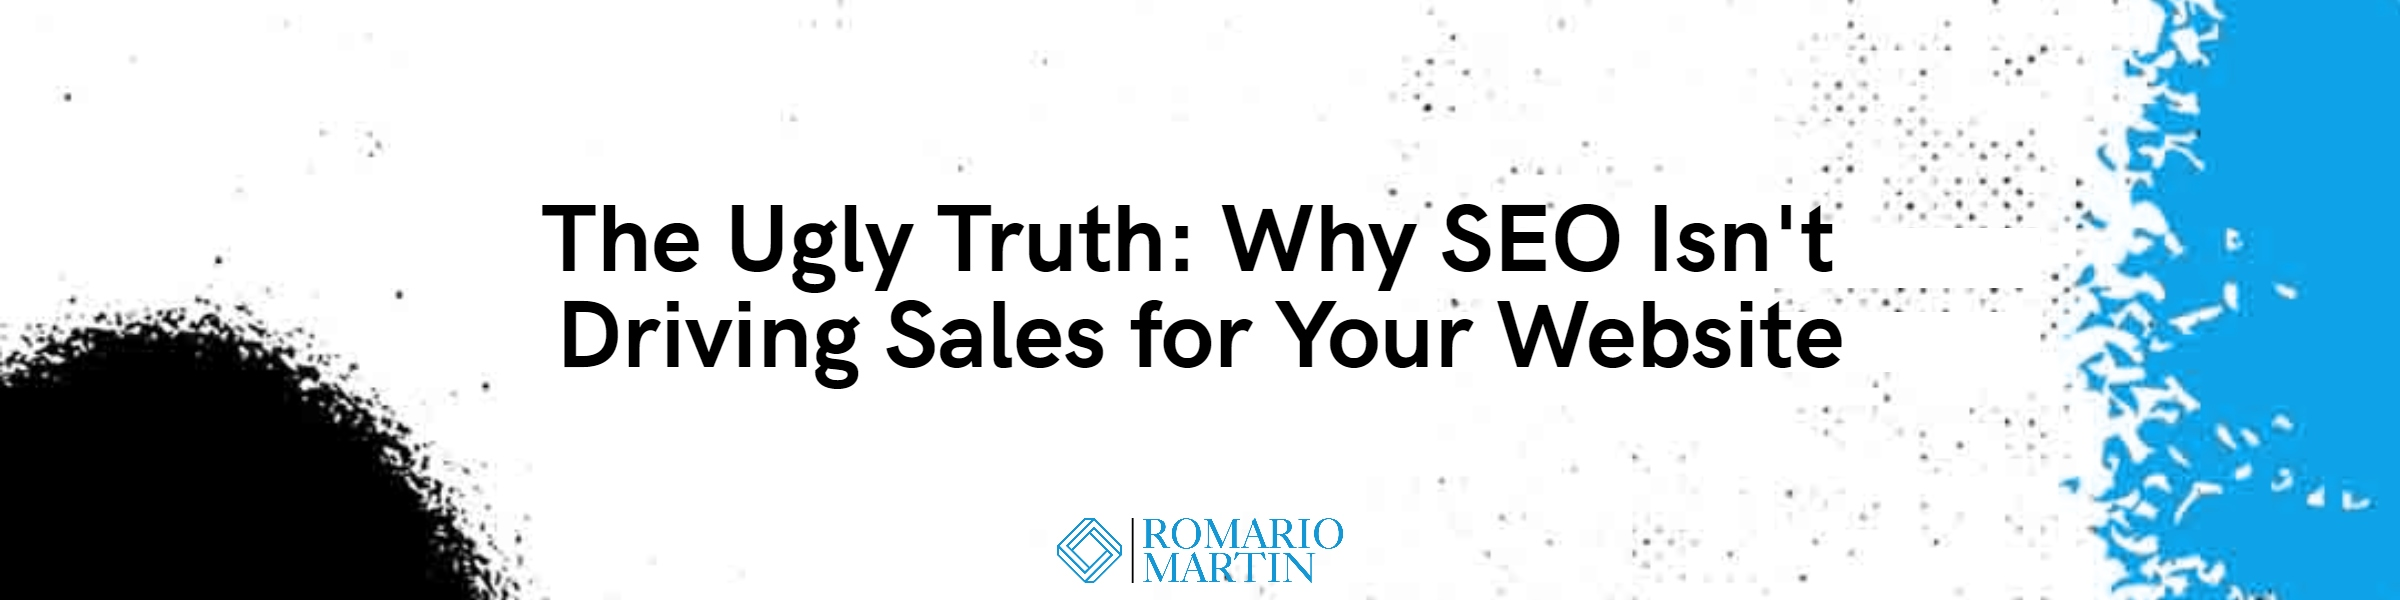 The Ugly Truth: Why SEO Isn't Driving Sales for Your Website